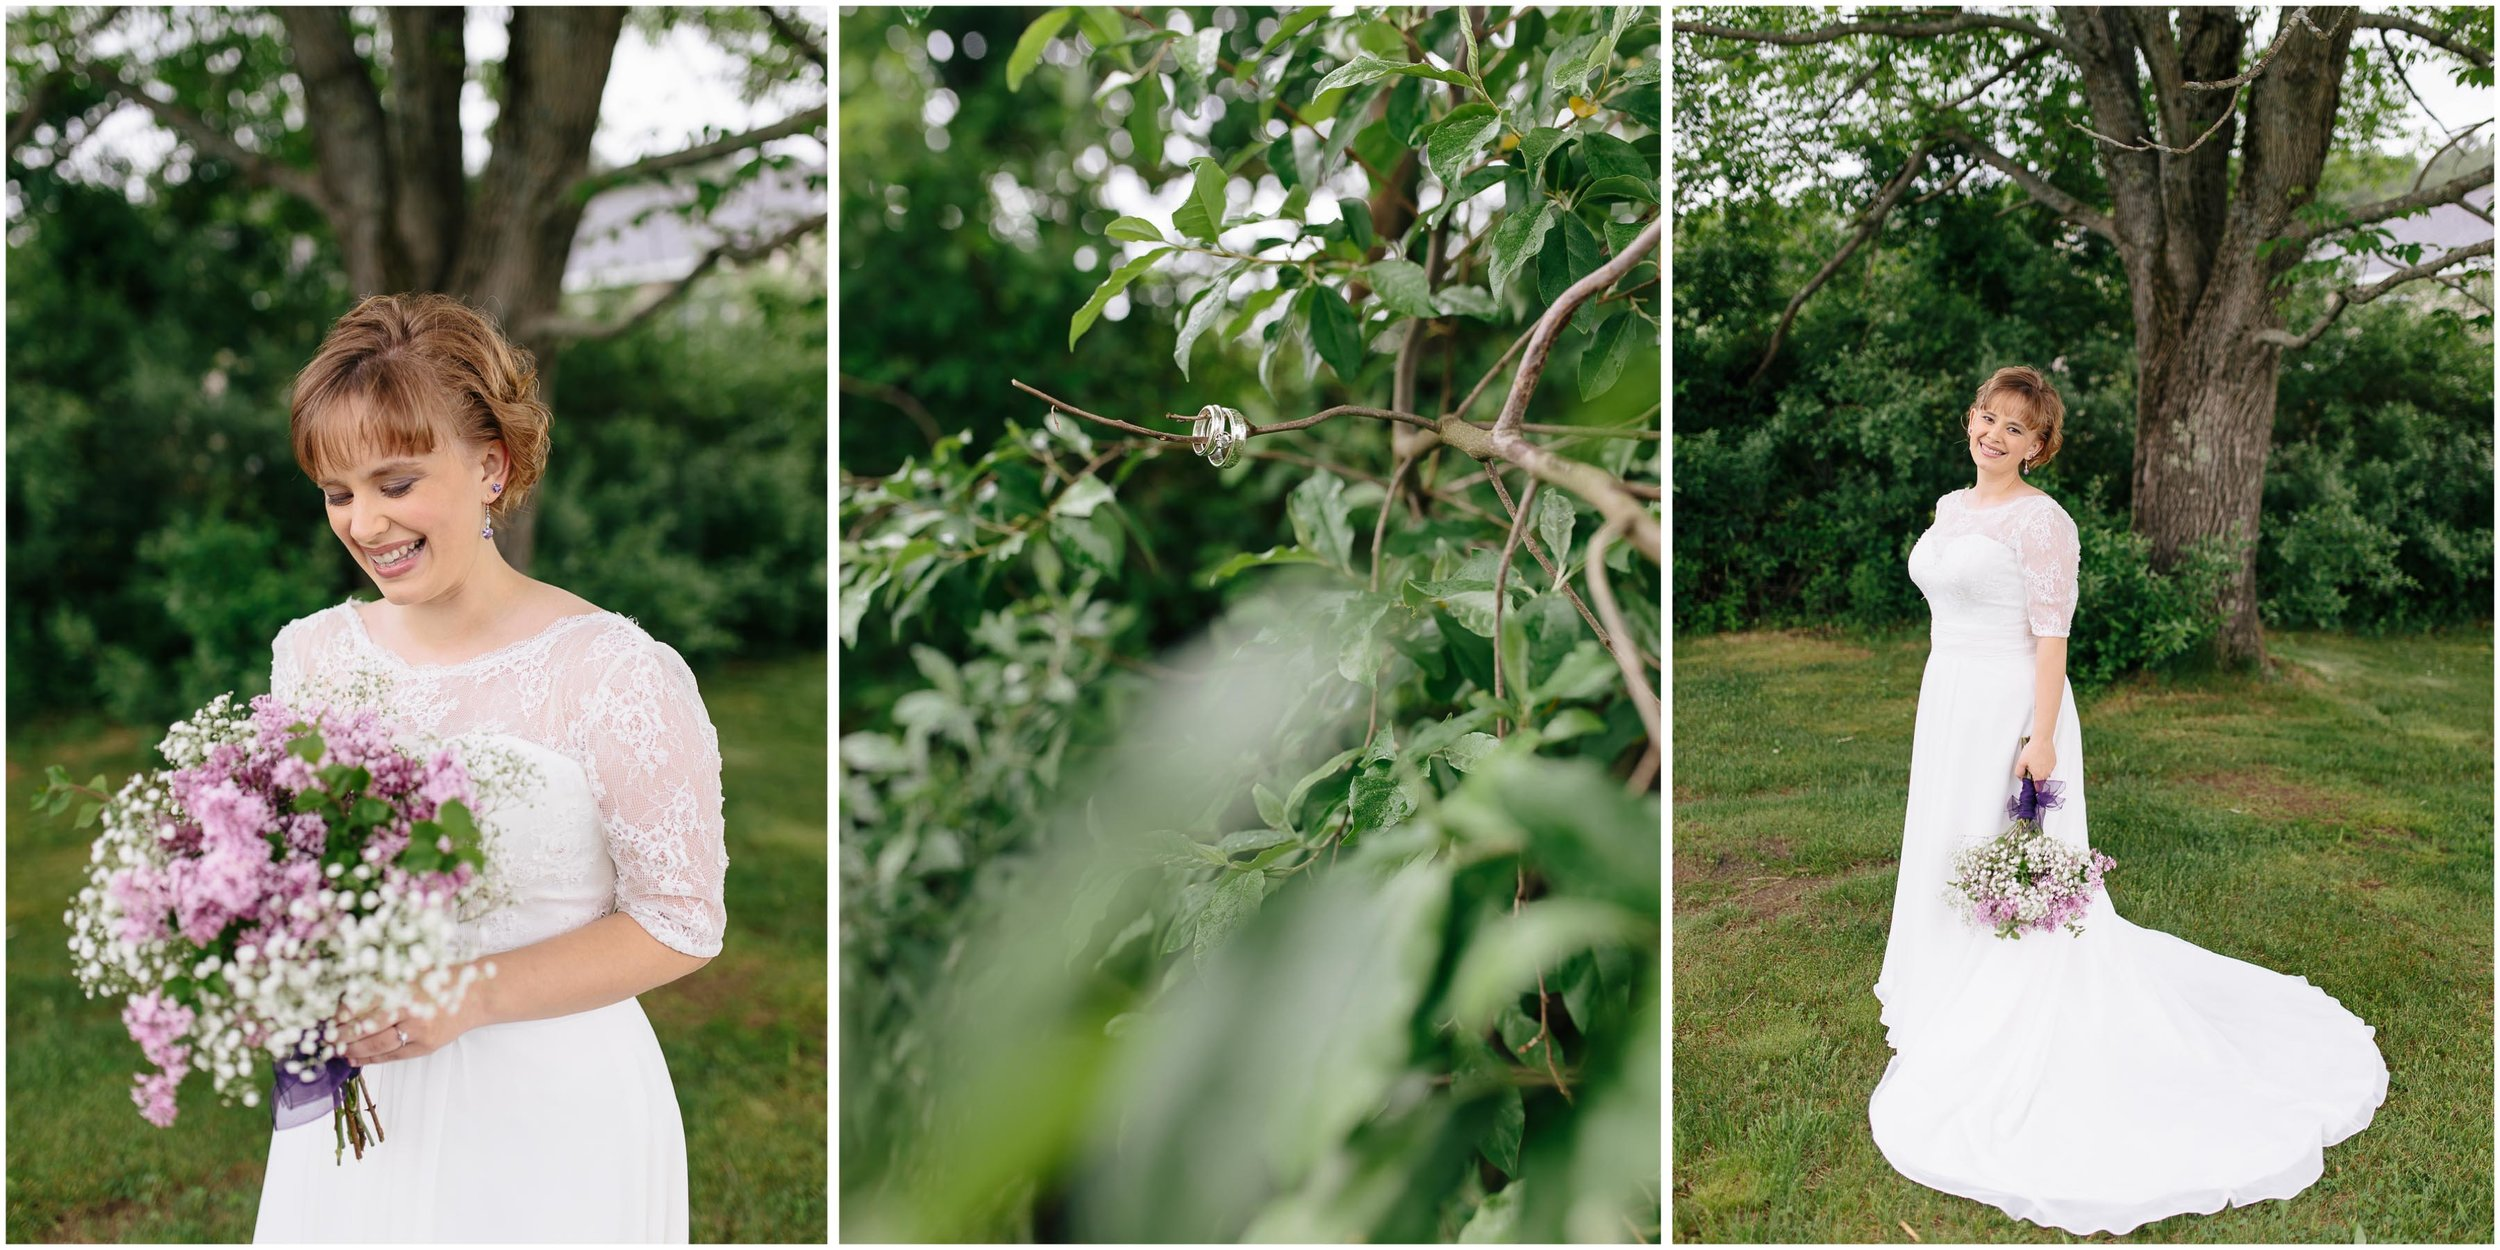 Charming Massachusetts countryside journalistic wedding by Ashleigh Laureen Photography - bride smiling and laughing, rings